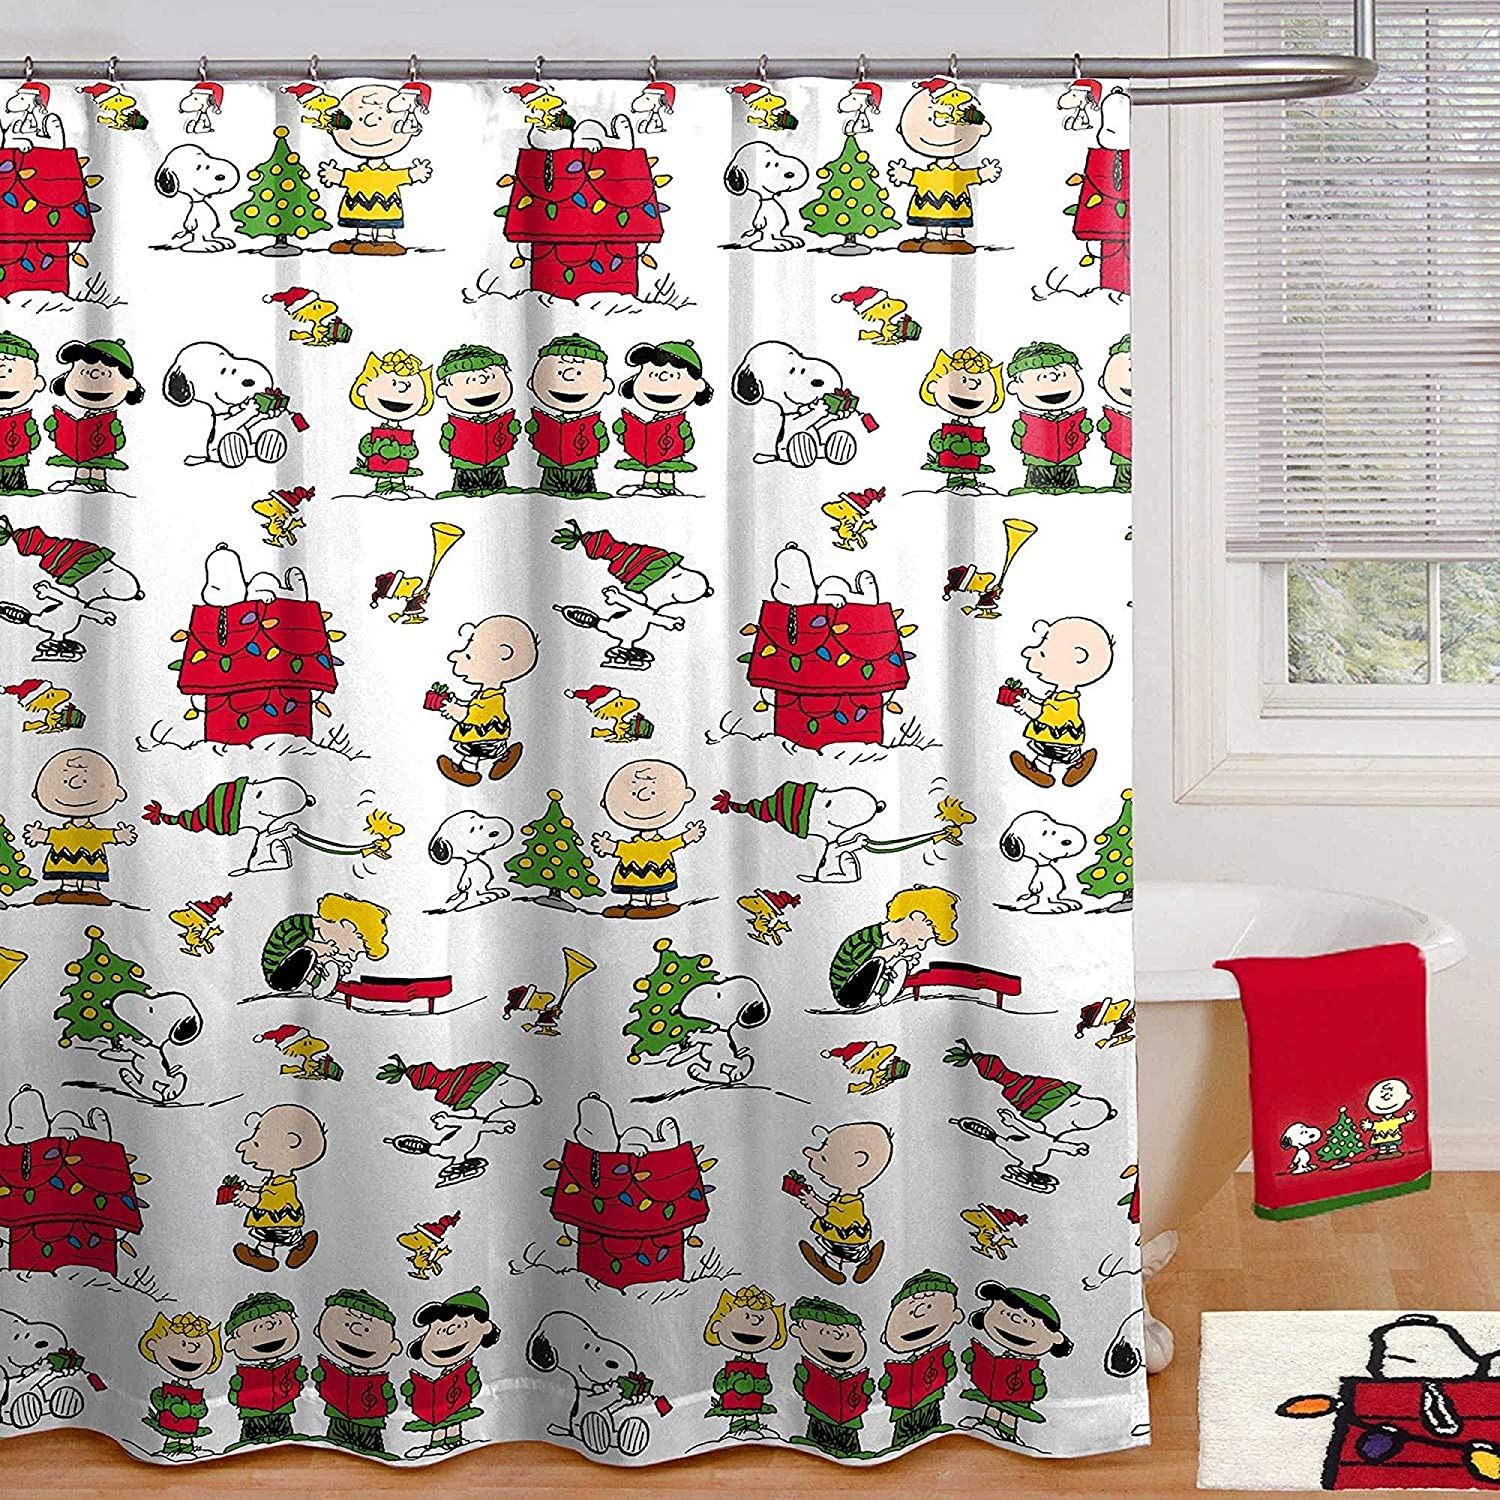 Amazon Com Peanuts Holiday Shower Curtain And Hook Set Home Kitchen